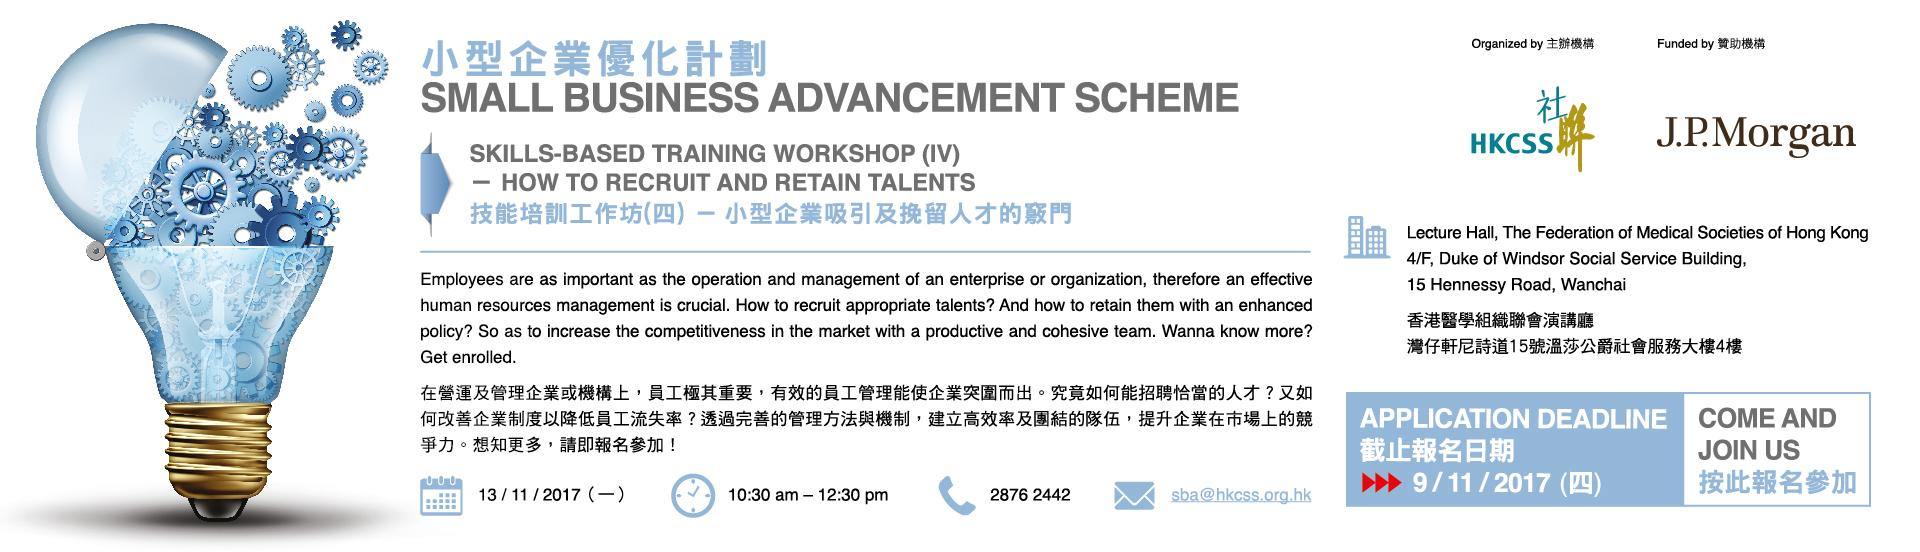 Small Business Advancement Scheme Skills-based Training Workshop (IV)